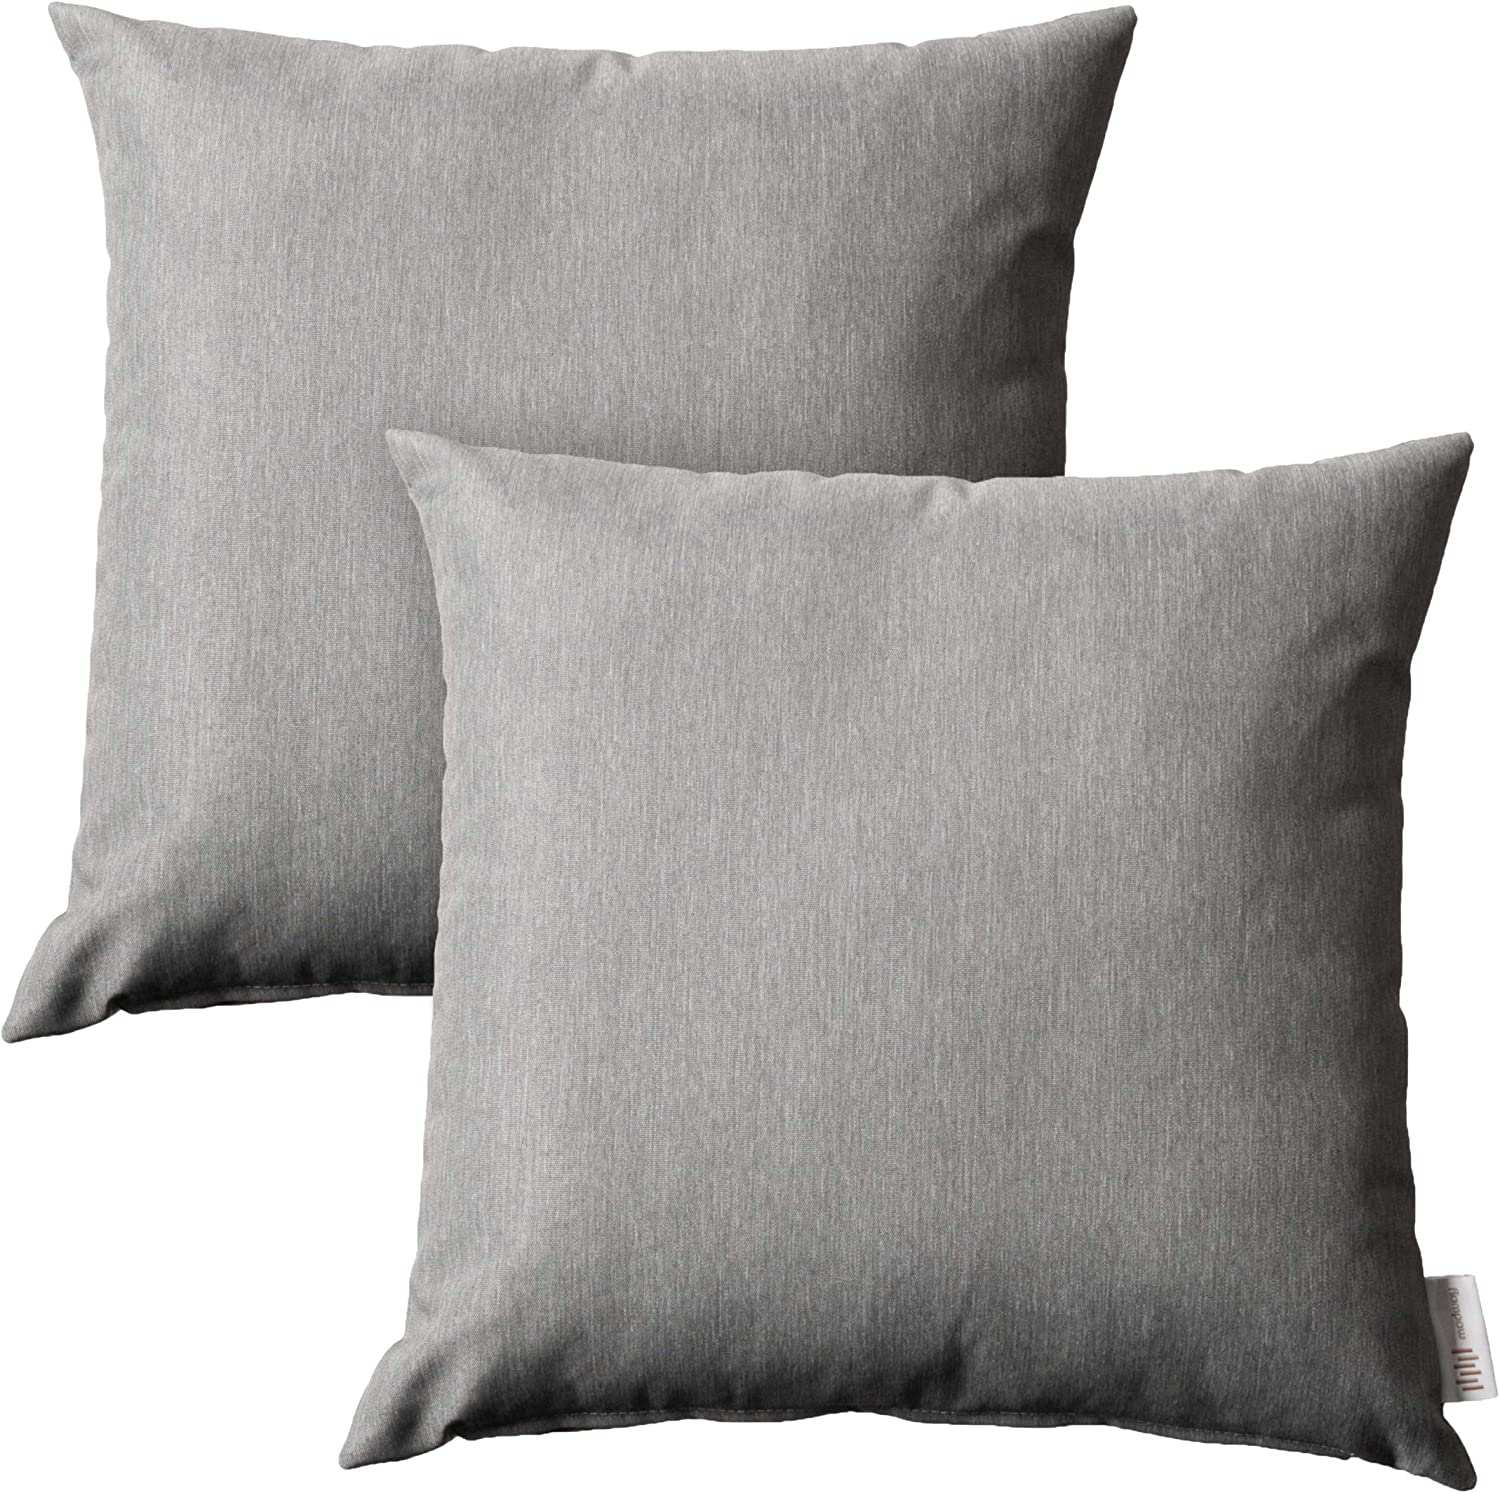 Modway Convene Outdoor Patio All-Weather Pillow in Gray - Set of 2